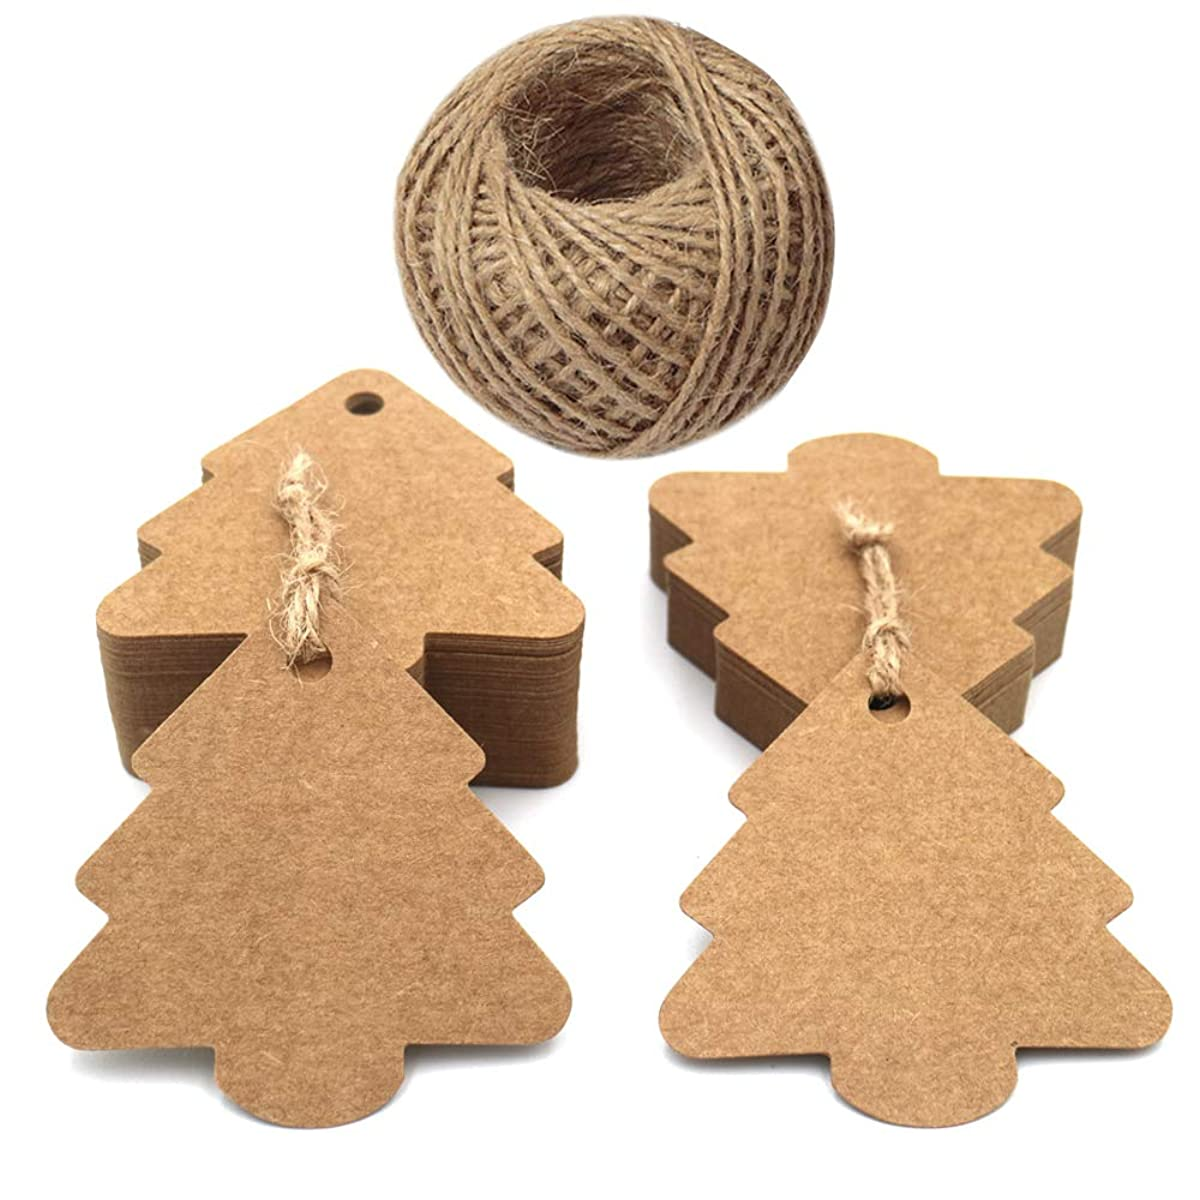 100 PCS Kraft Paper Gift Tags Christmas Tree Shape Brown Kraft Hang Tag Bonbonniere Wedding Favor Gift Tags with Jute Twine 30 Meters Long for DIY Crafts & Price Tags